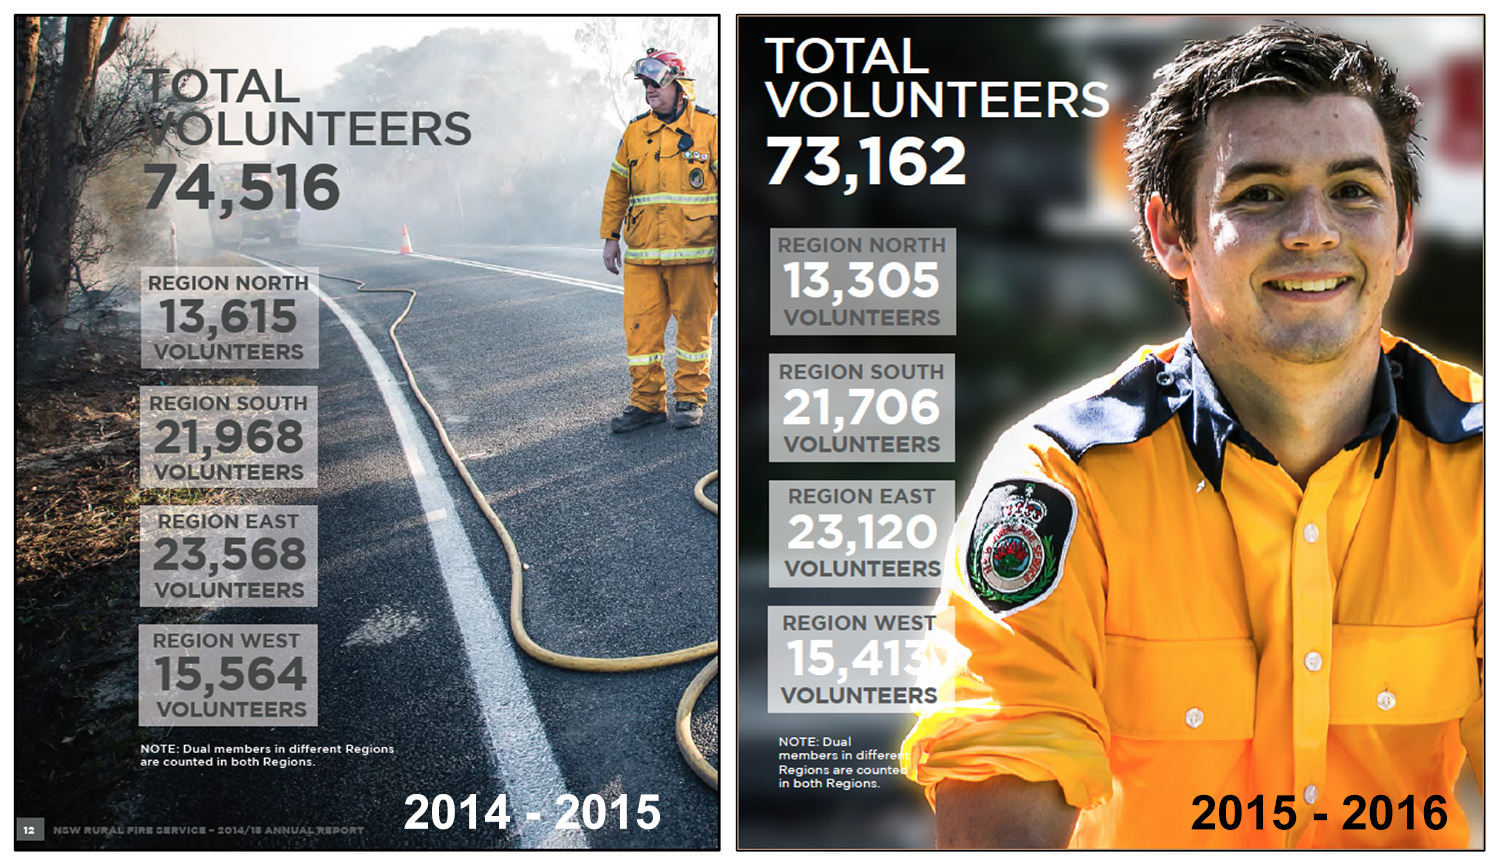 Images taken from the NSW RFS annual report that show a drop of 1354 volunteer numbers in a 12 month period